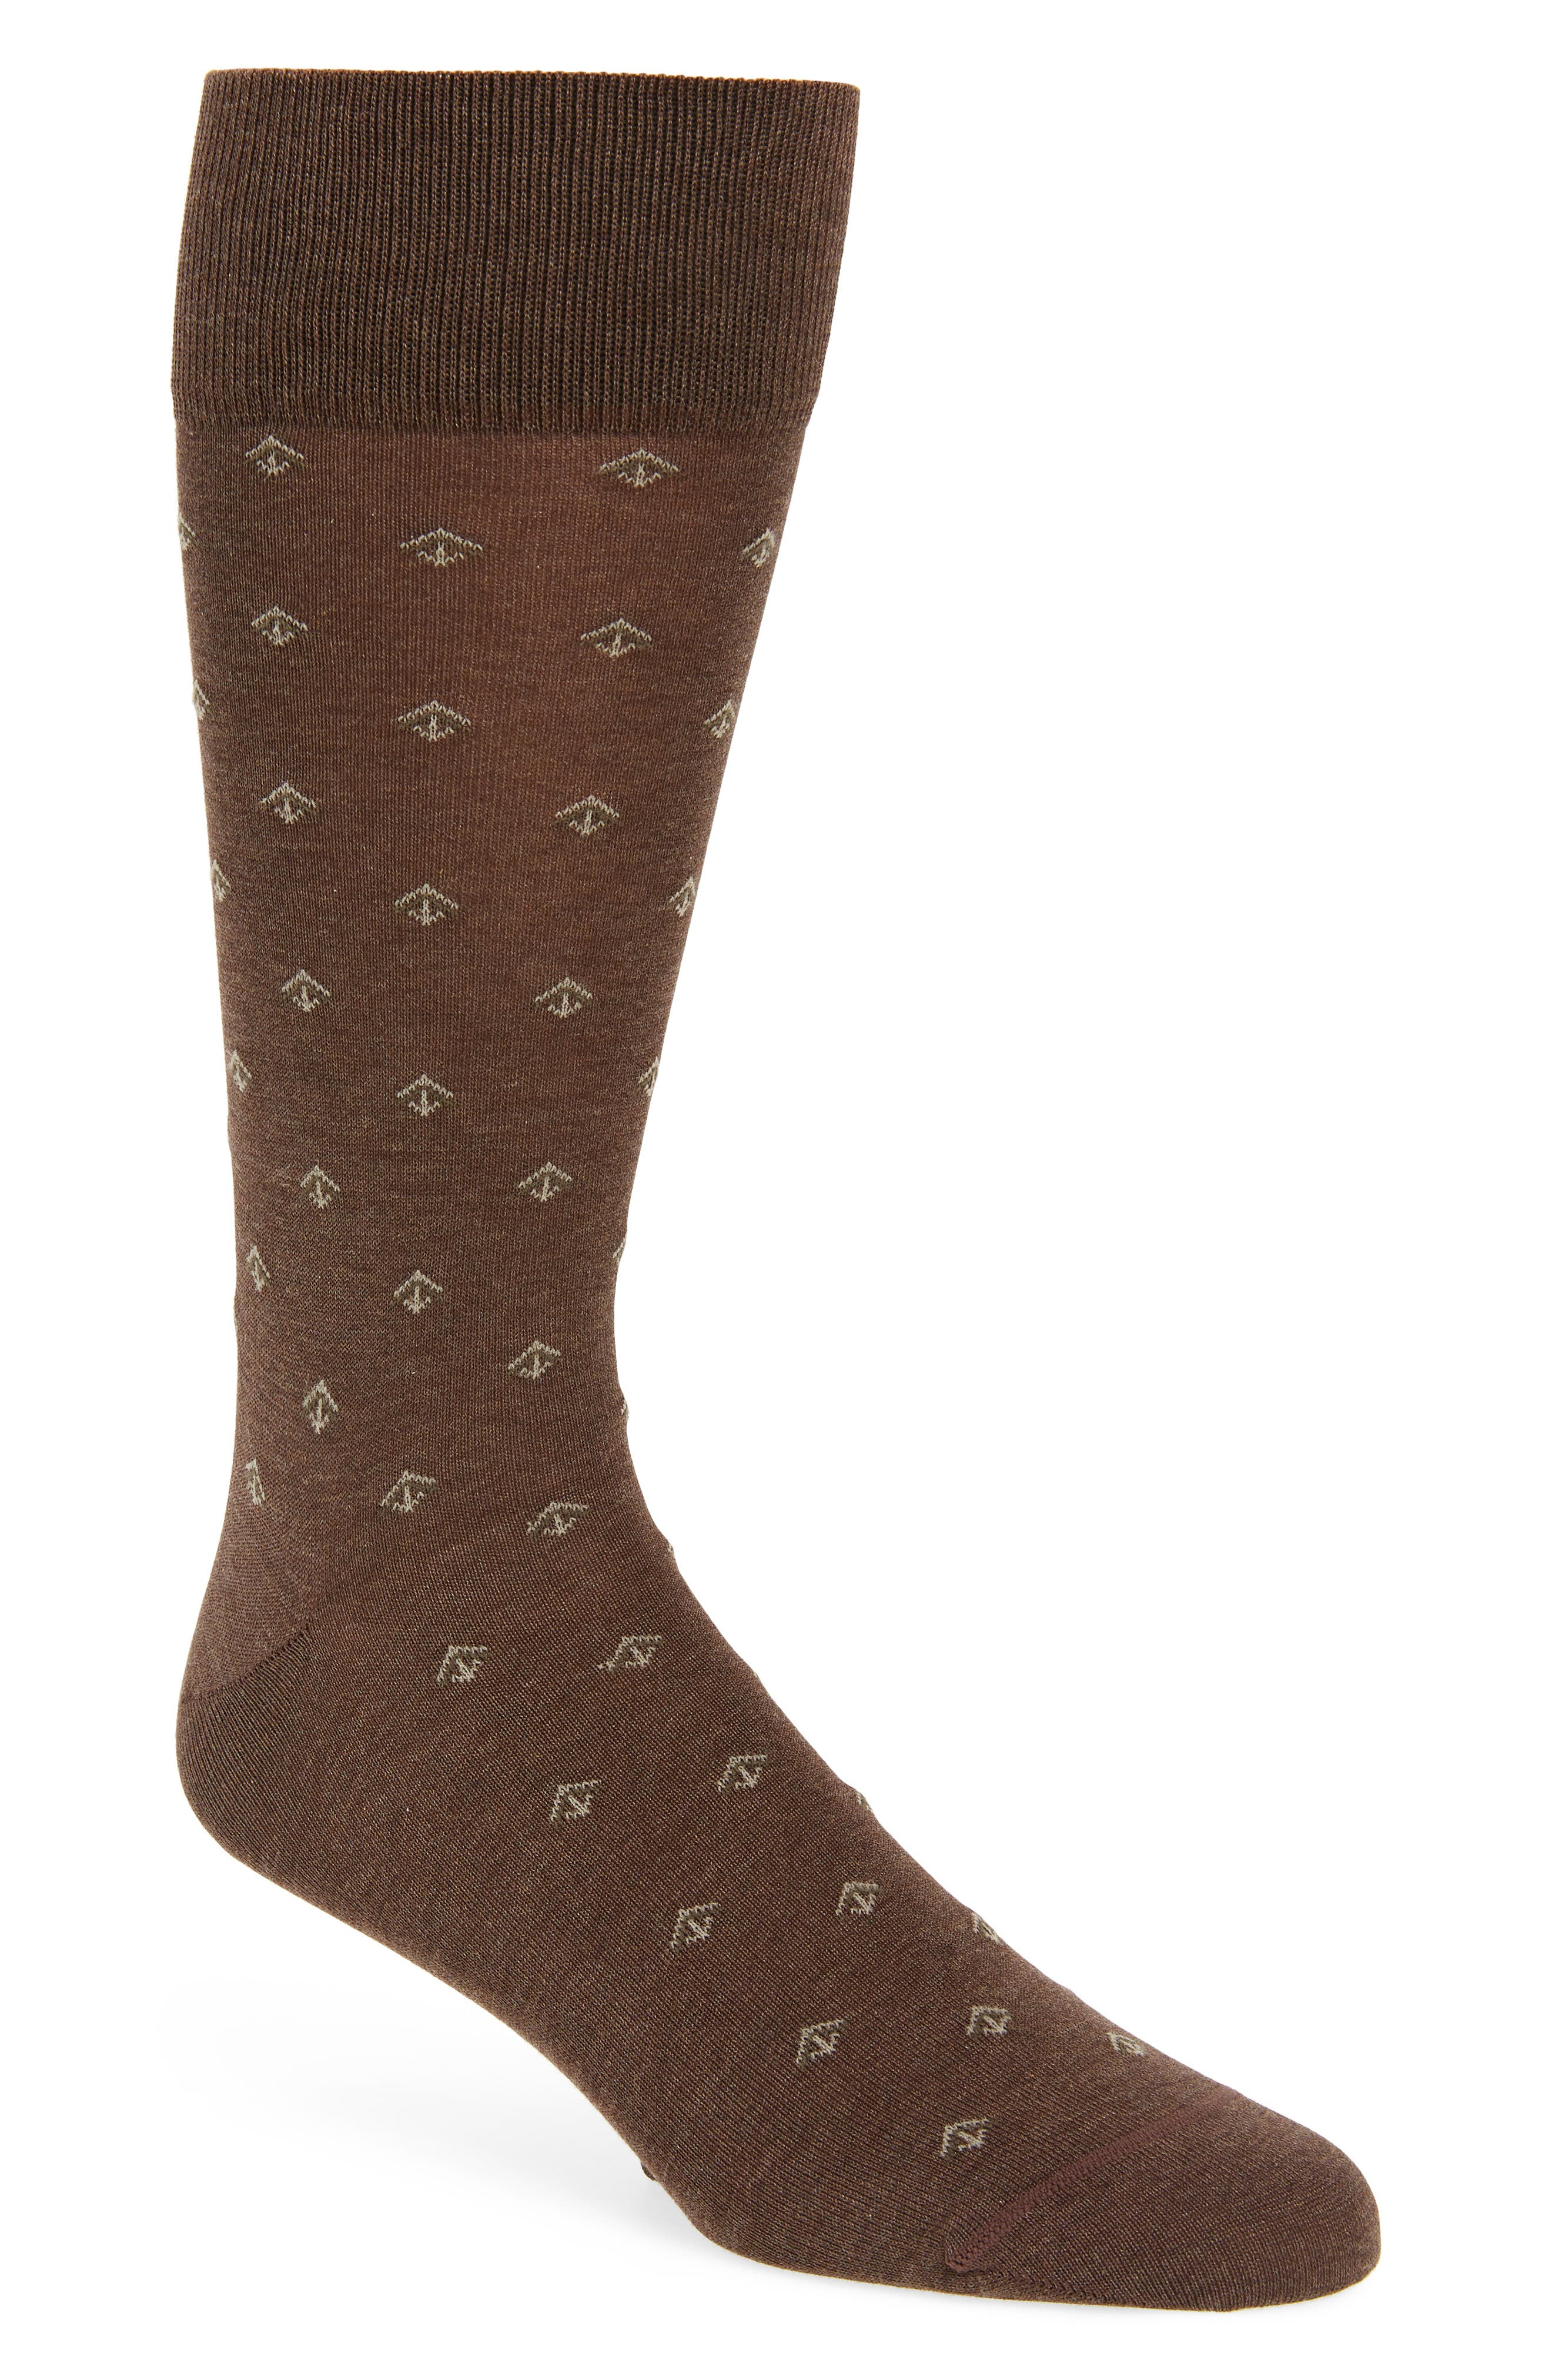 Cascading Arrows Socks,                         Main,                         color, 230